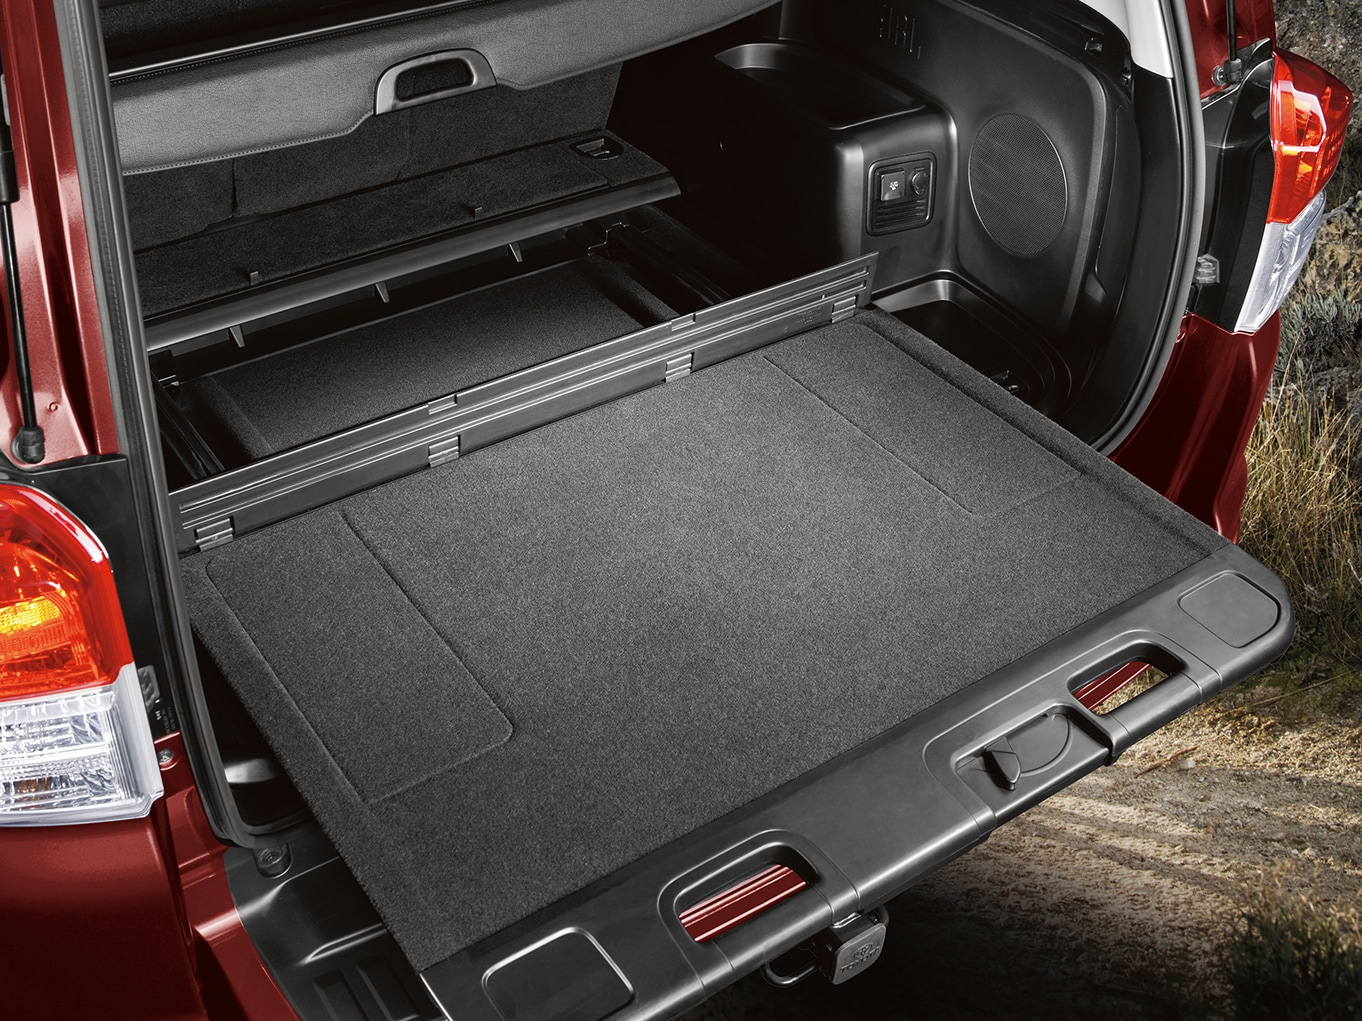 trunk space of the 2019 4Runner